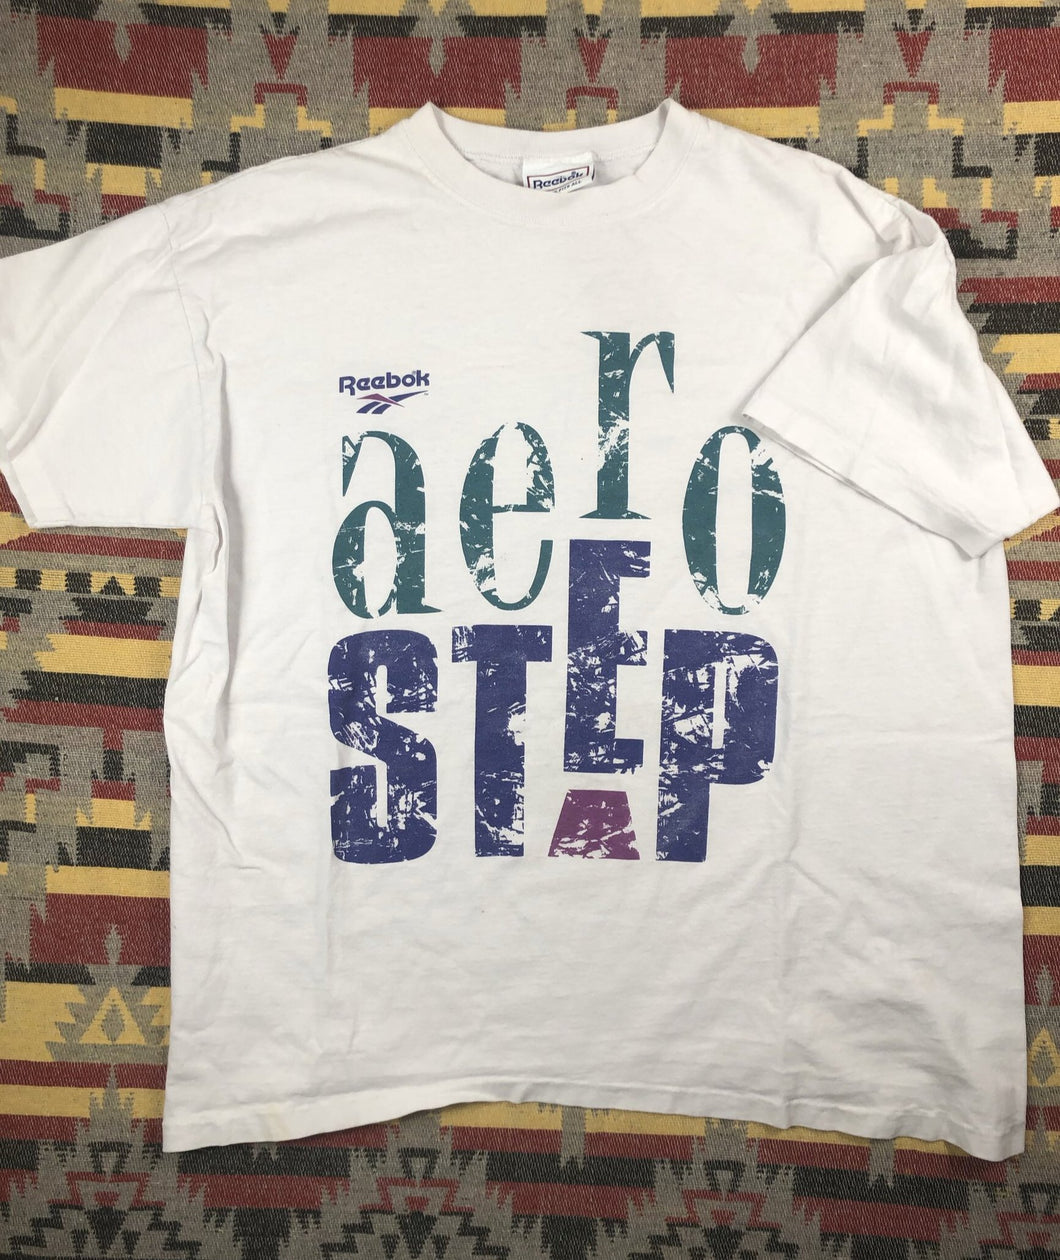 Vintage Aero Step by Reebok shirt size XL